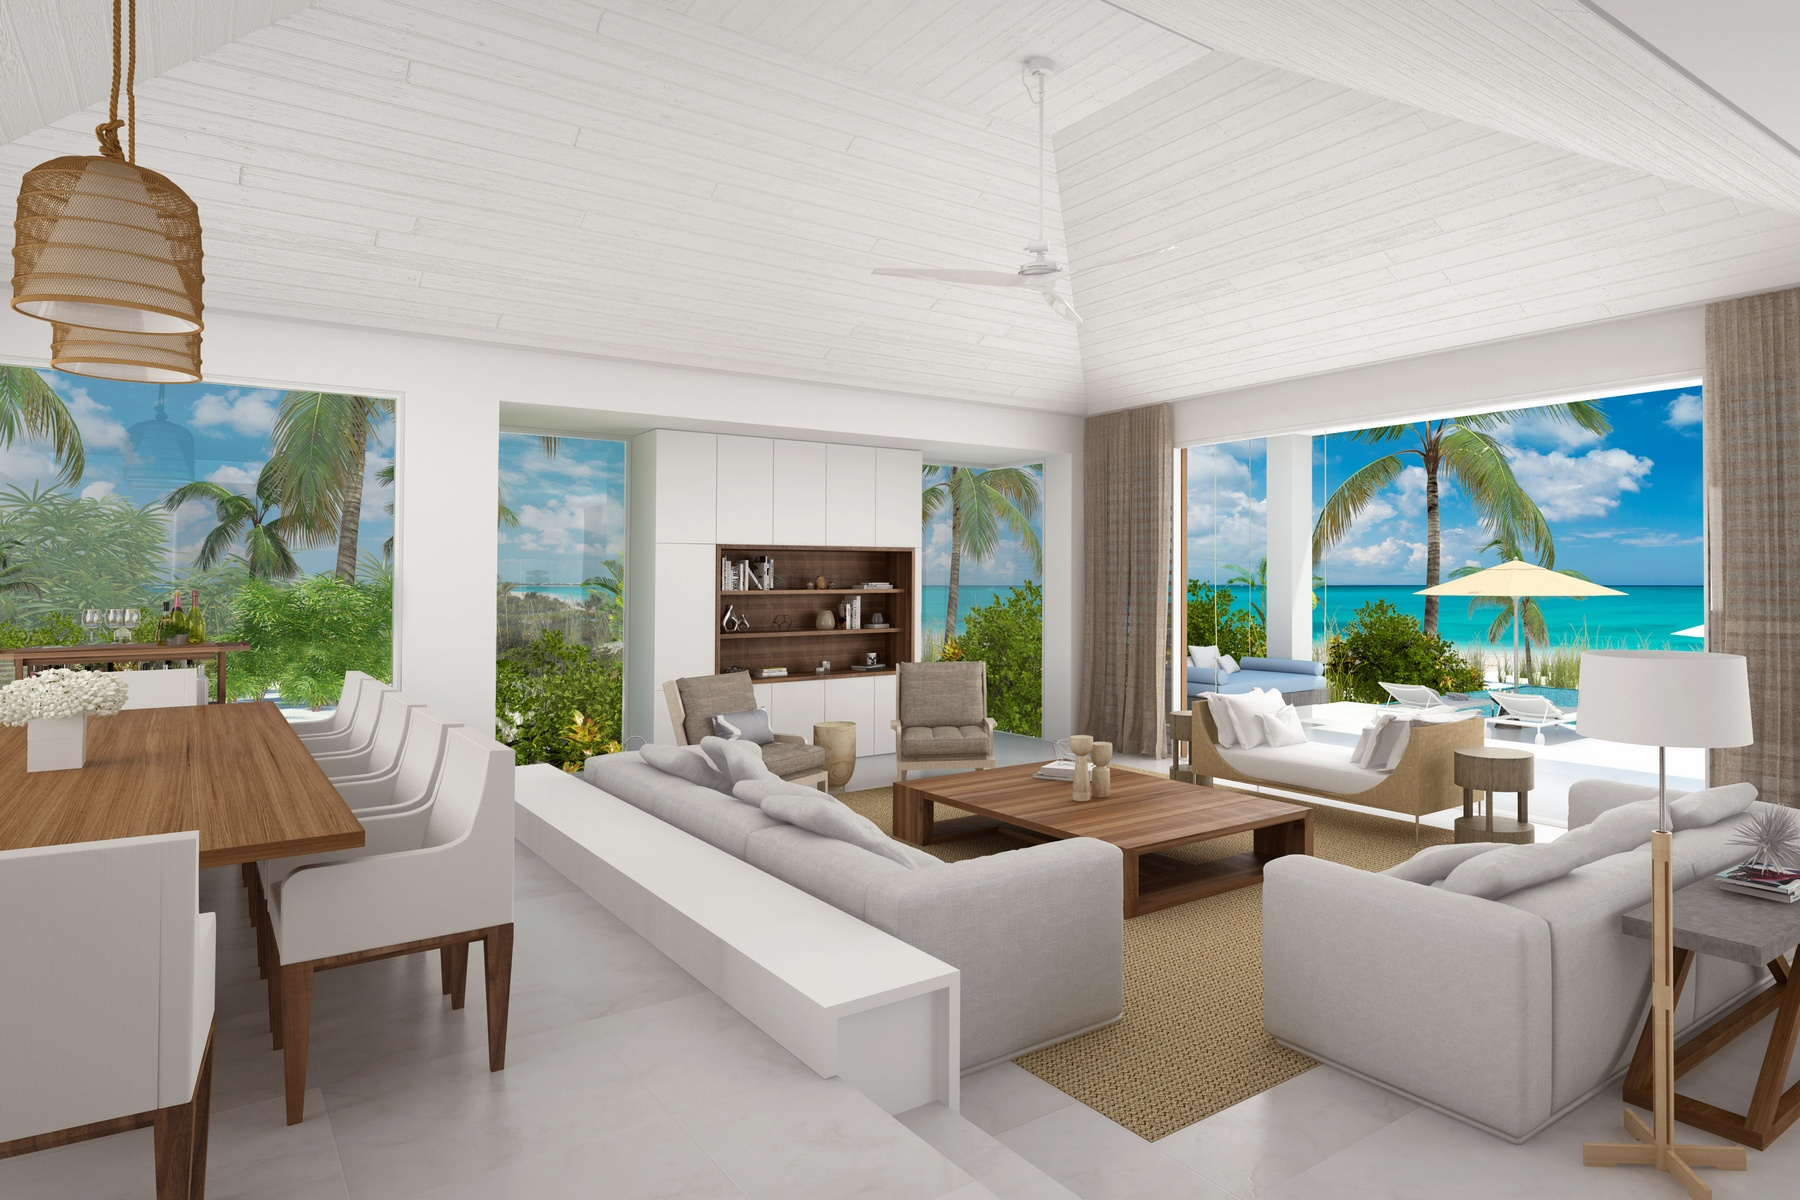 Additional photo for property listing at BEACH ENCLAVE GRACE BAY Design A Beachfront 格蕾斯湾, 普罗维登夏 TCI 特克斯和凯科斯群岛